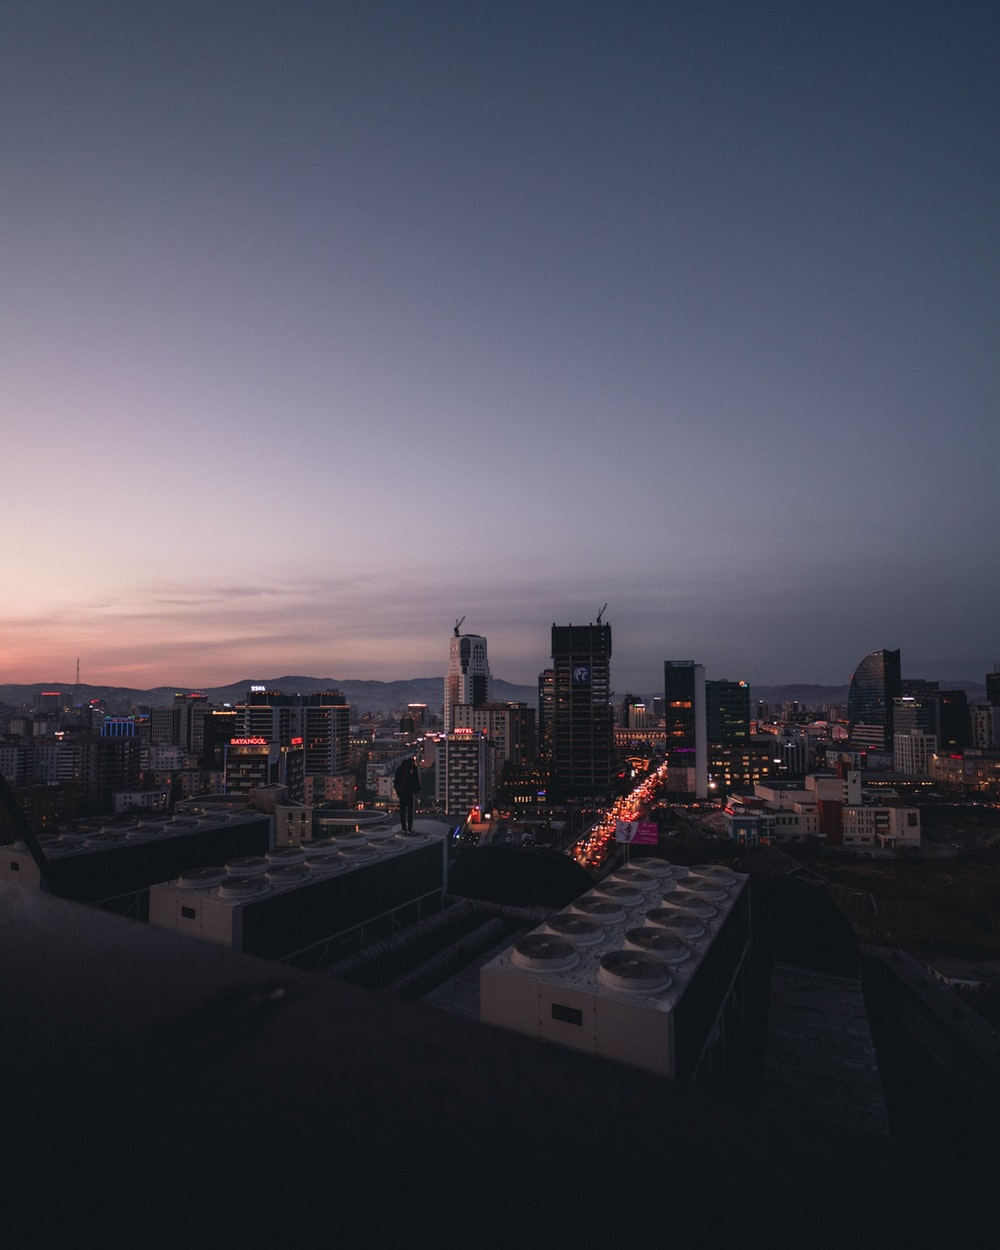 cityscape during sunset